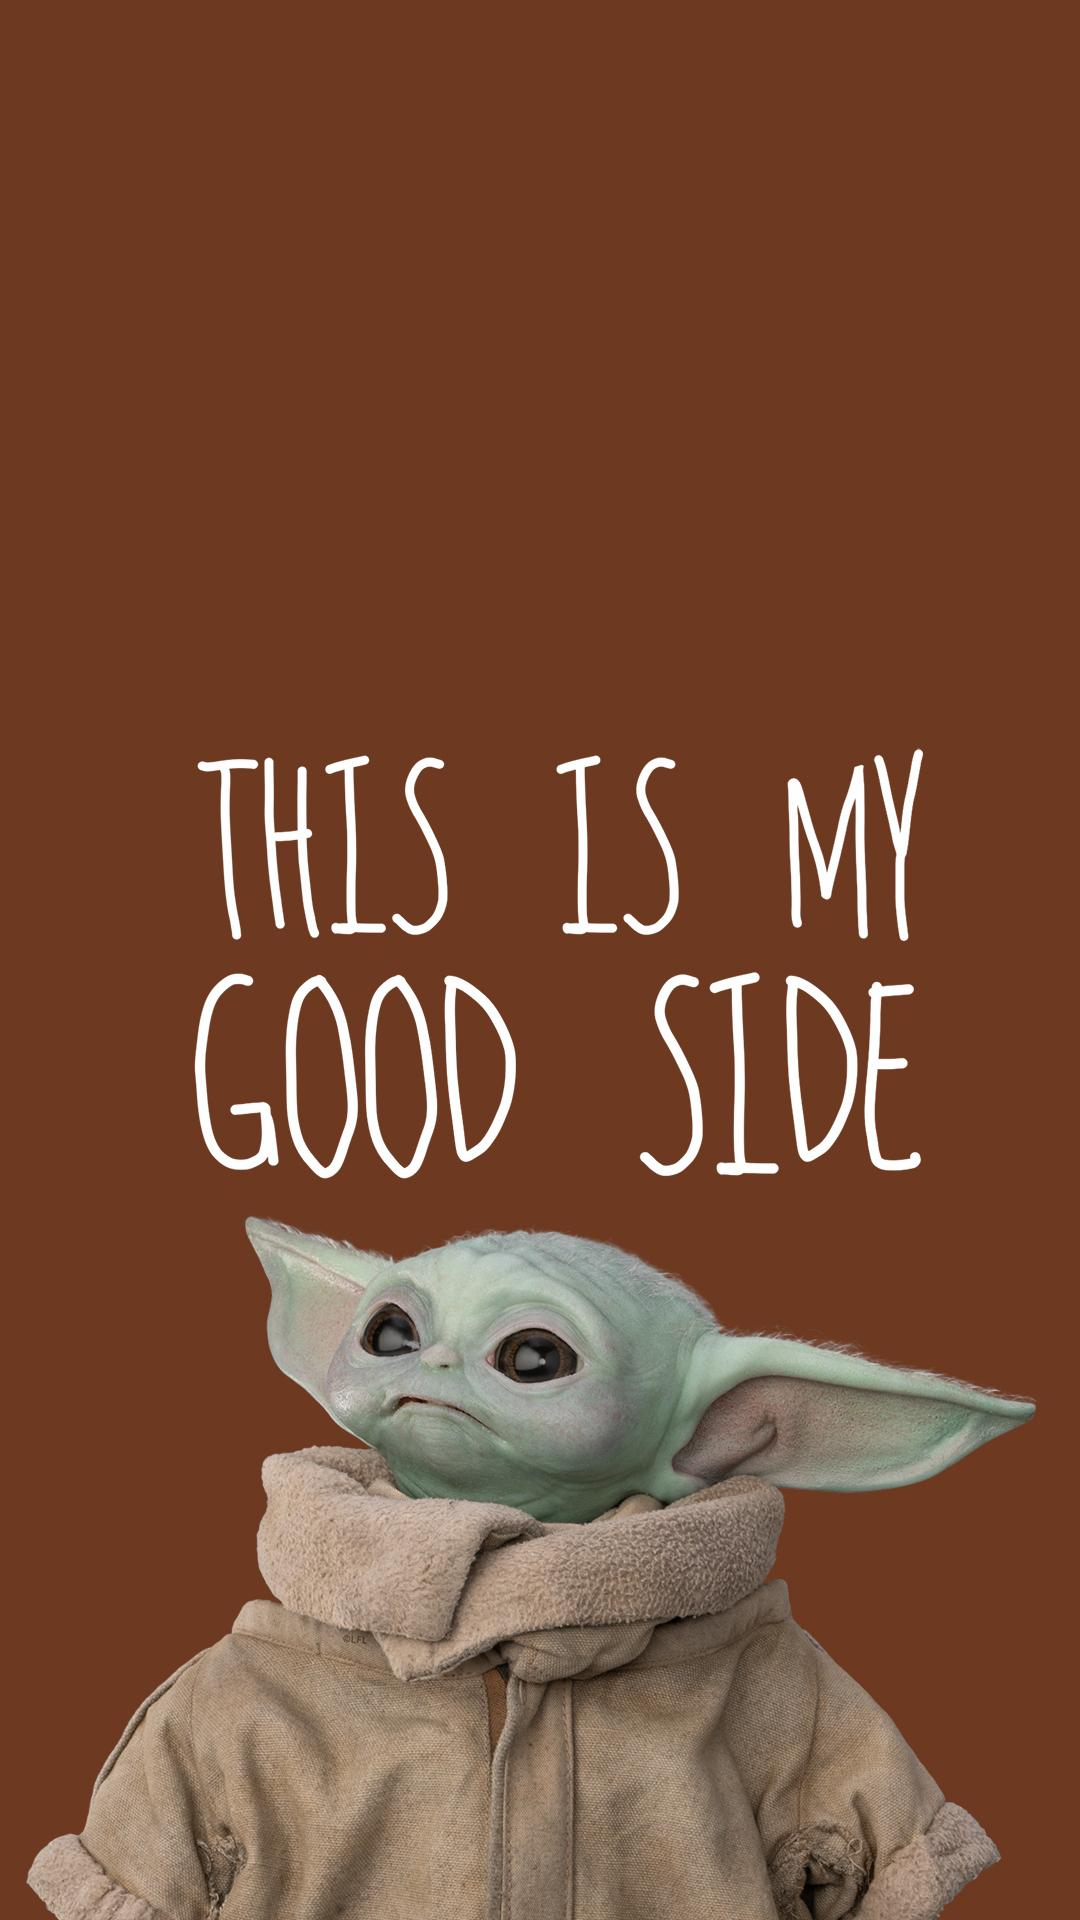 Baby Yoda For Phone Wallpapers - Wallpaper Cave